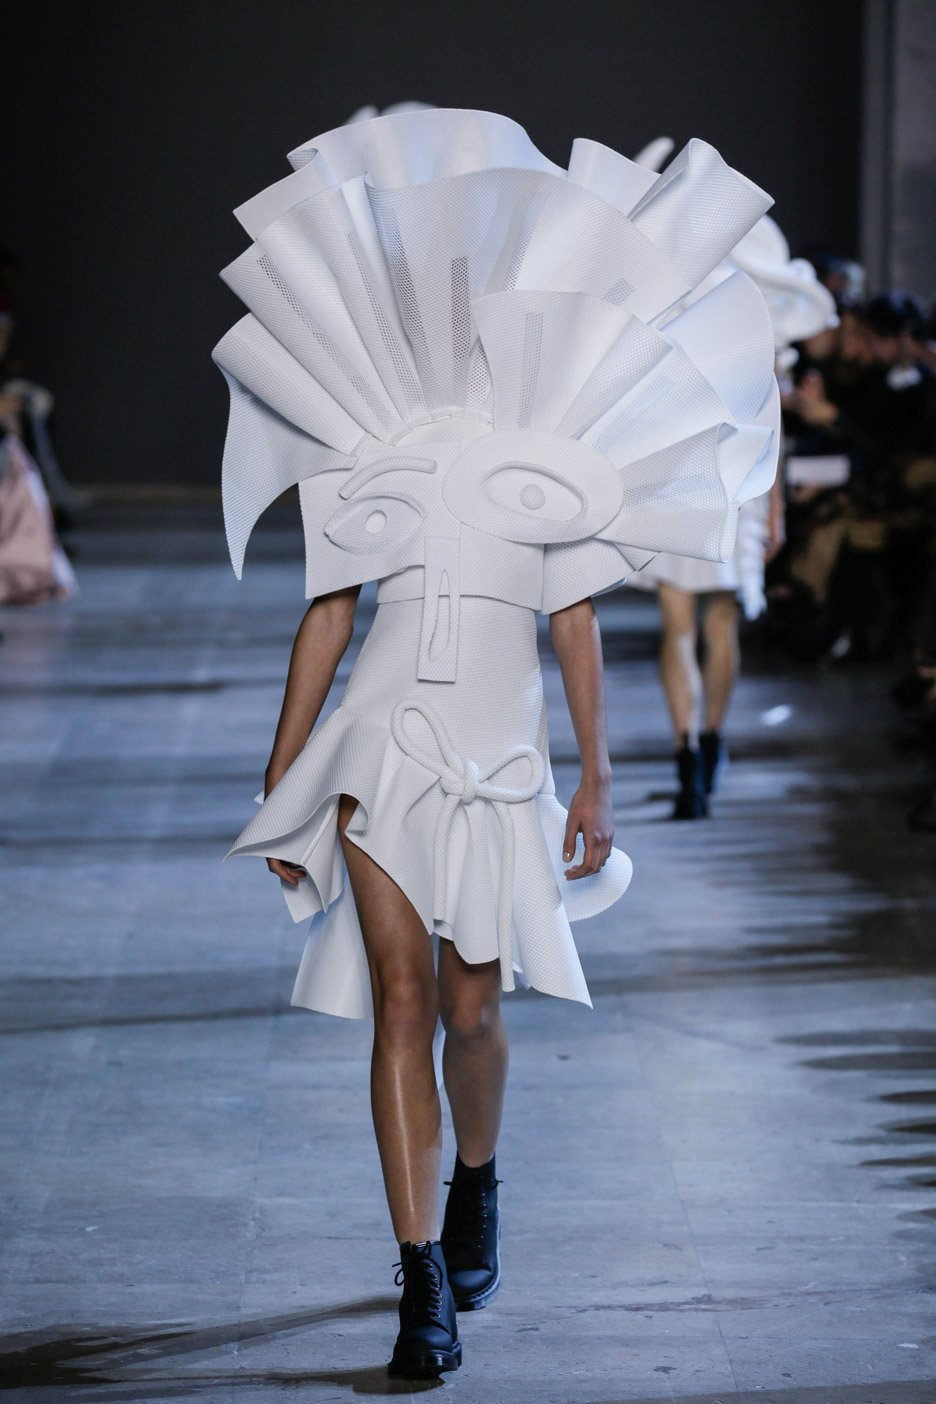 Viktor&Rolf Spring/Summer 2016 haute couture Cubist inspired collection